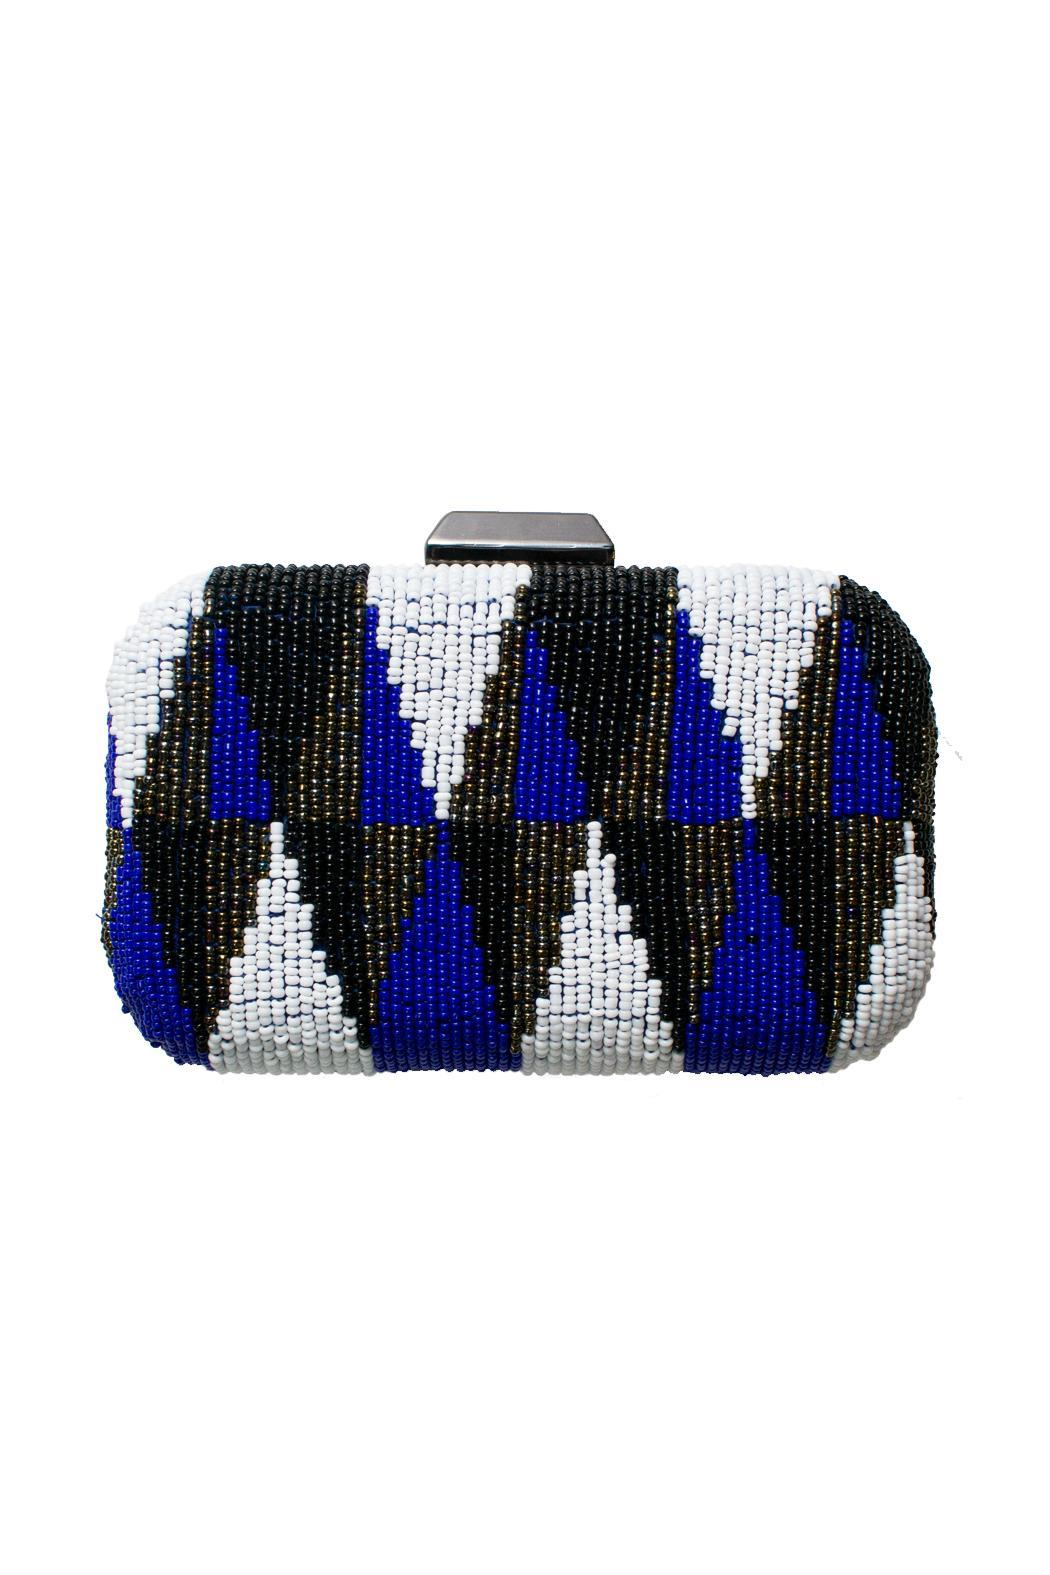 Brilliant-Blue Beaded Clutch - Main Image